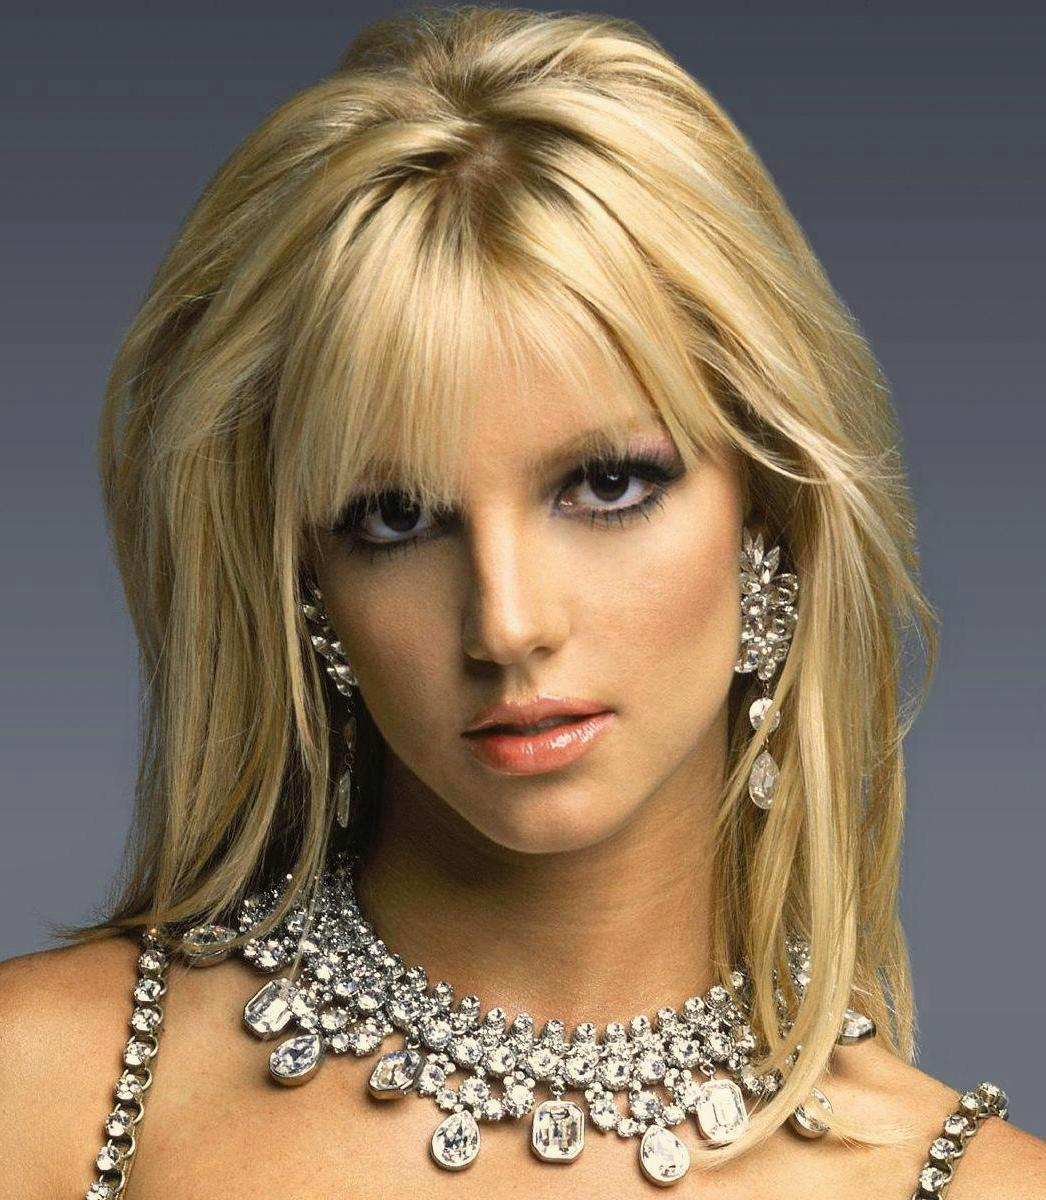 Britney Spears December 2 Sending Very Happy Birthday Wishes! All the Best!